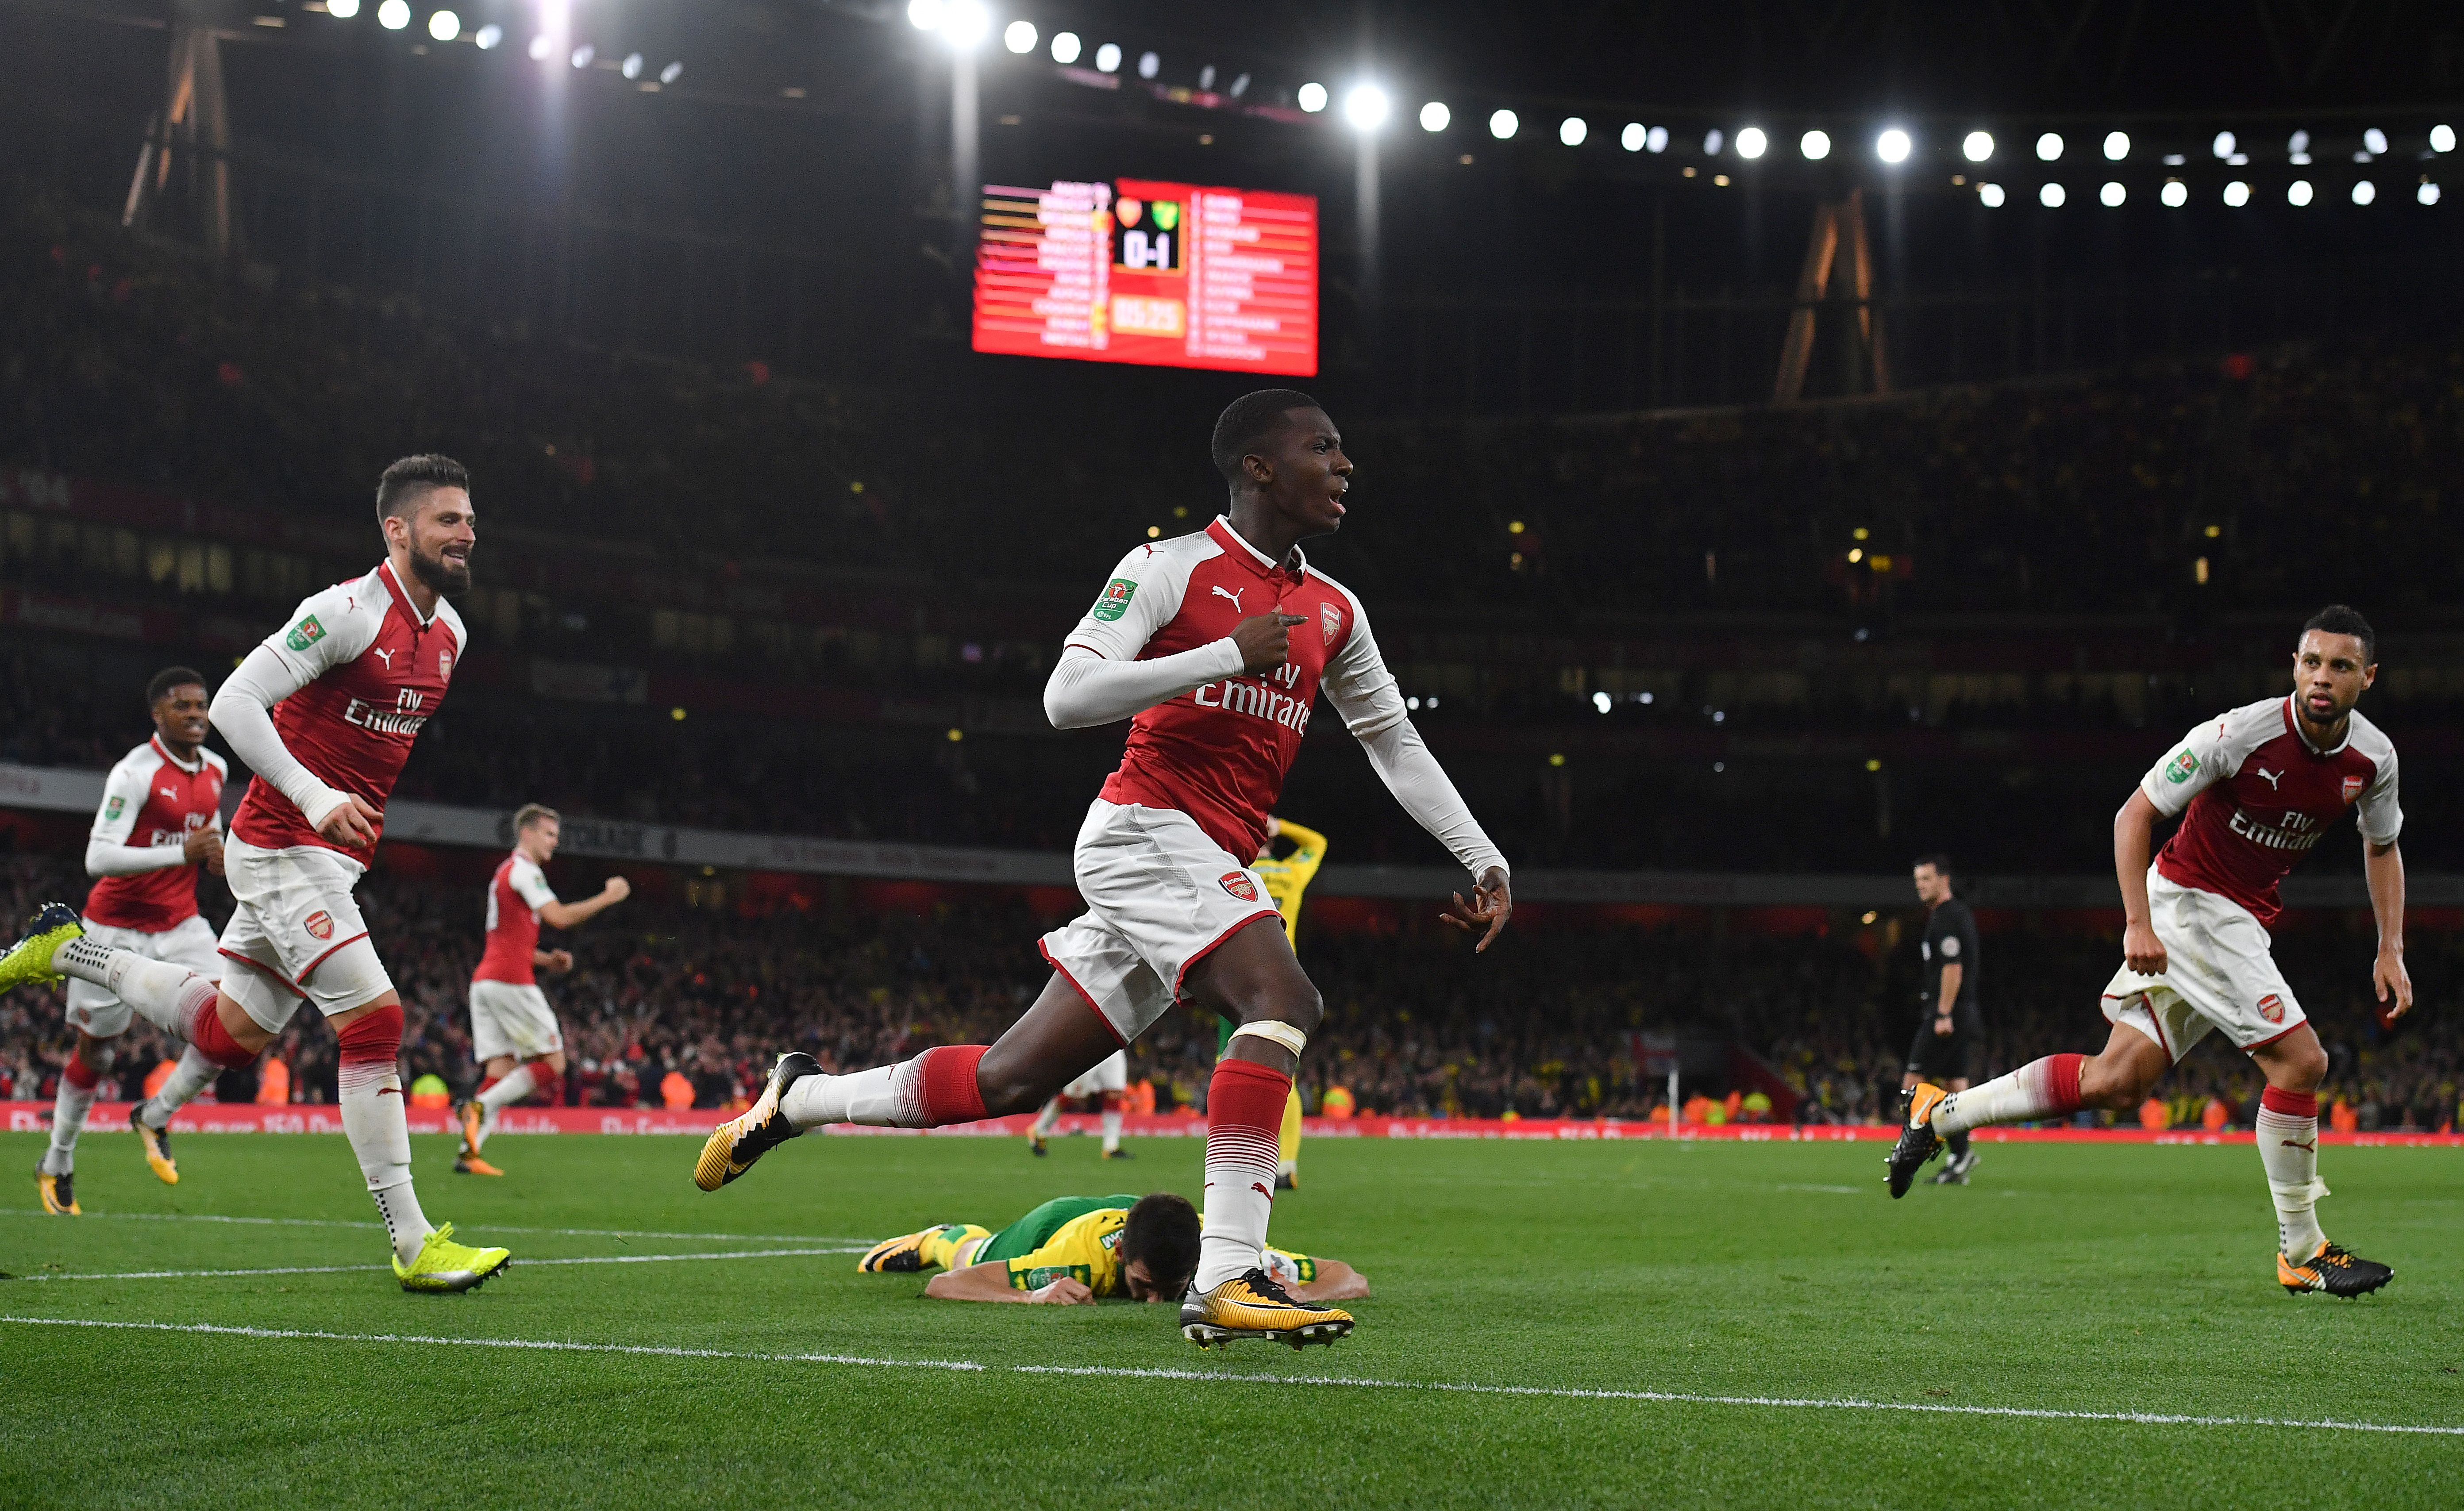 Crystal Palace have ended their pursuit of Eddie Nketiah who looks set to remain at Arsenal this summer